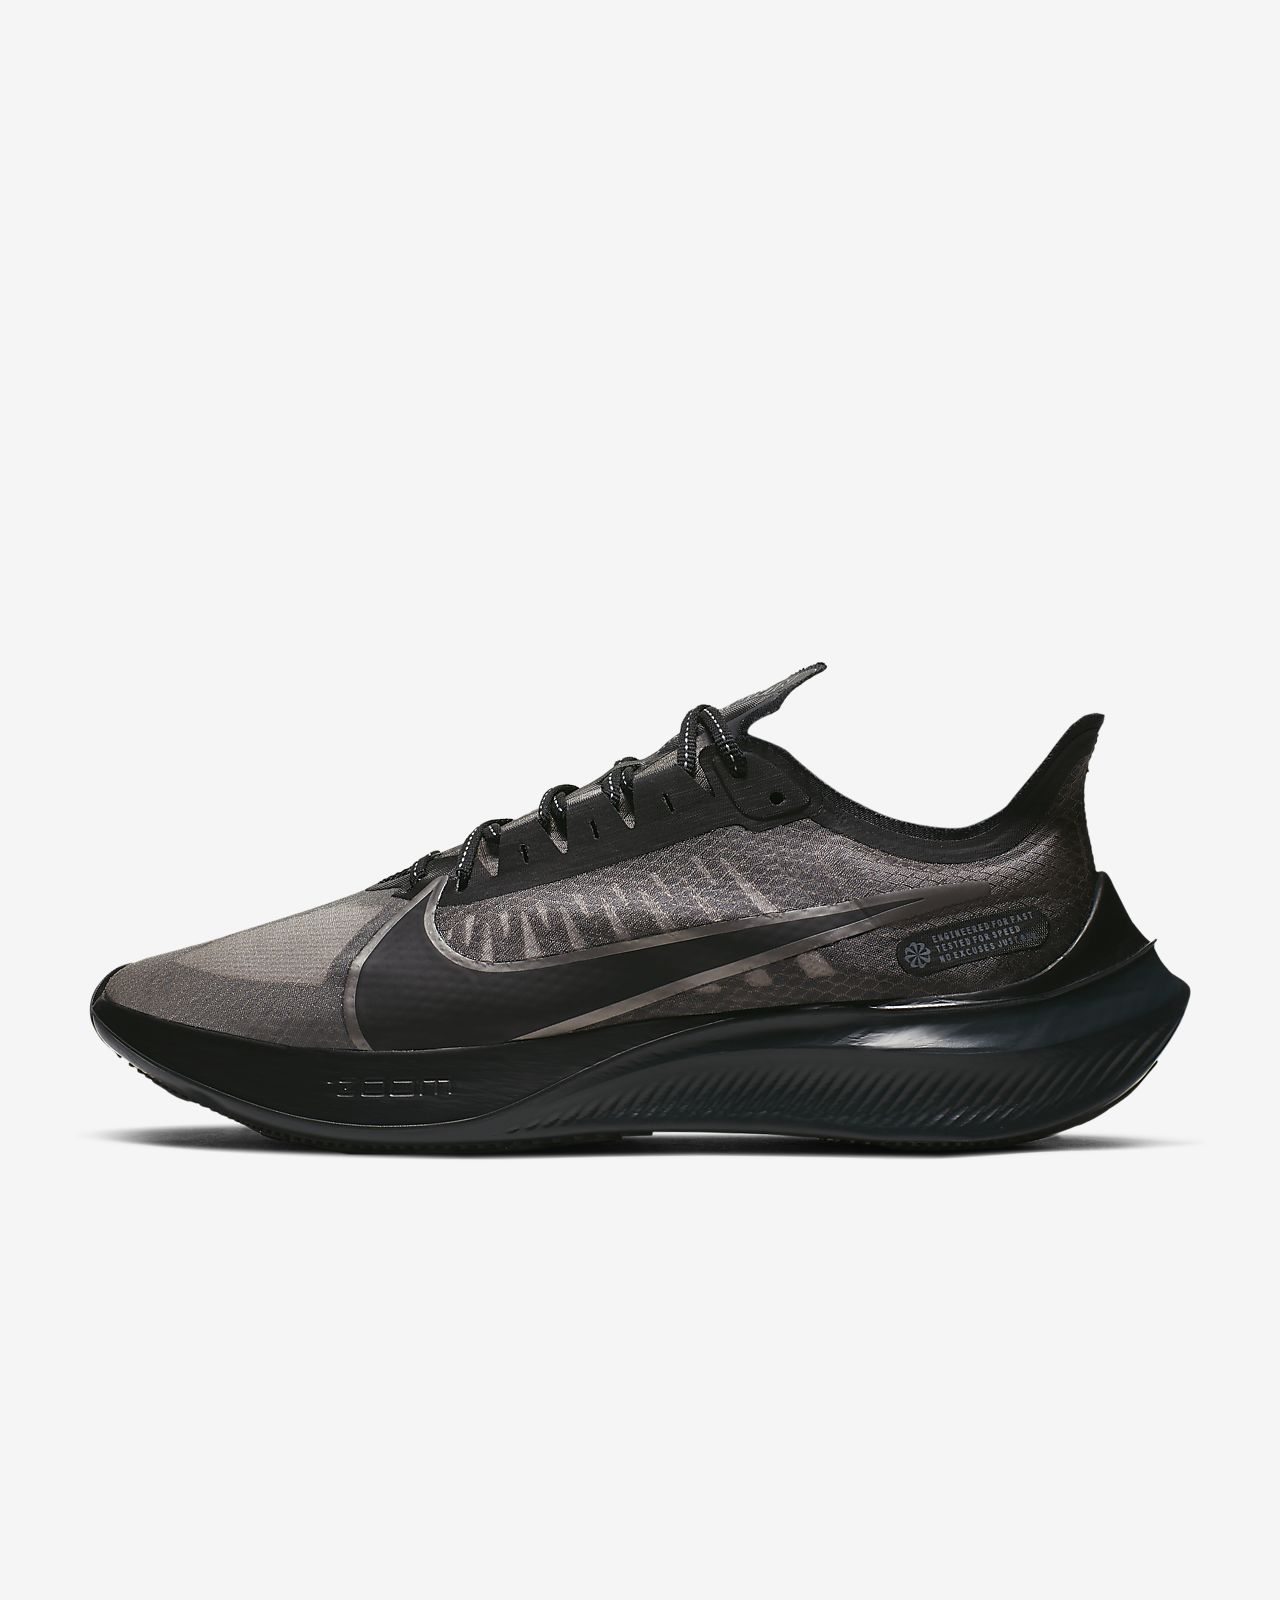 Chaussure Nike Homme Running Zoom Pour De Gravity CxrWQdBoe